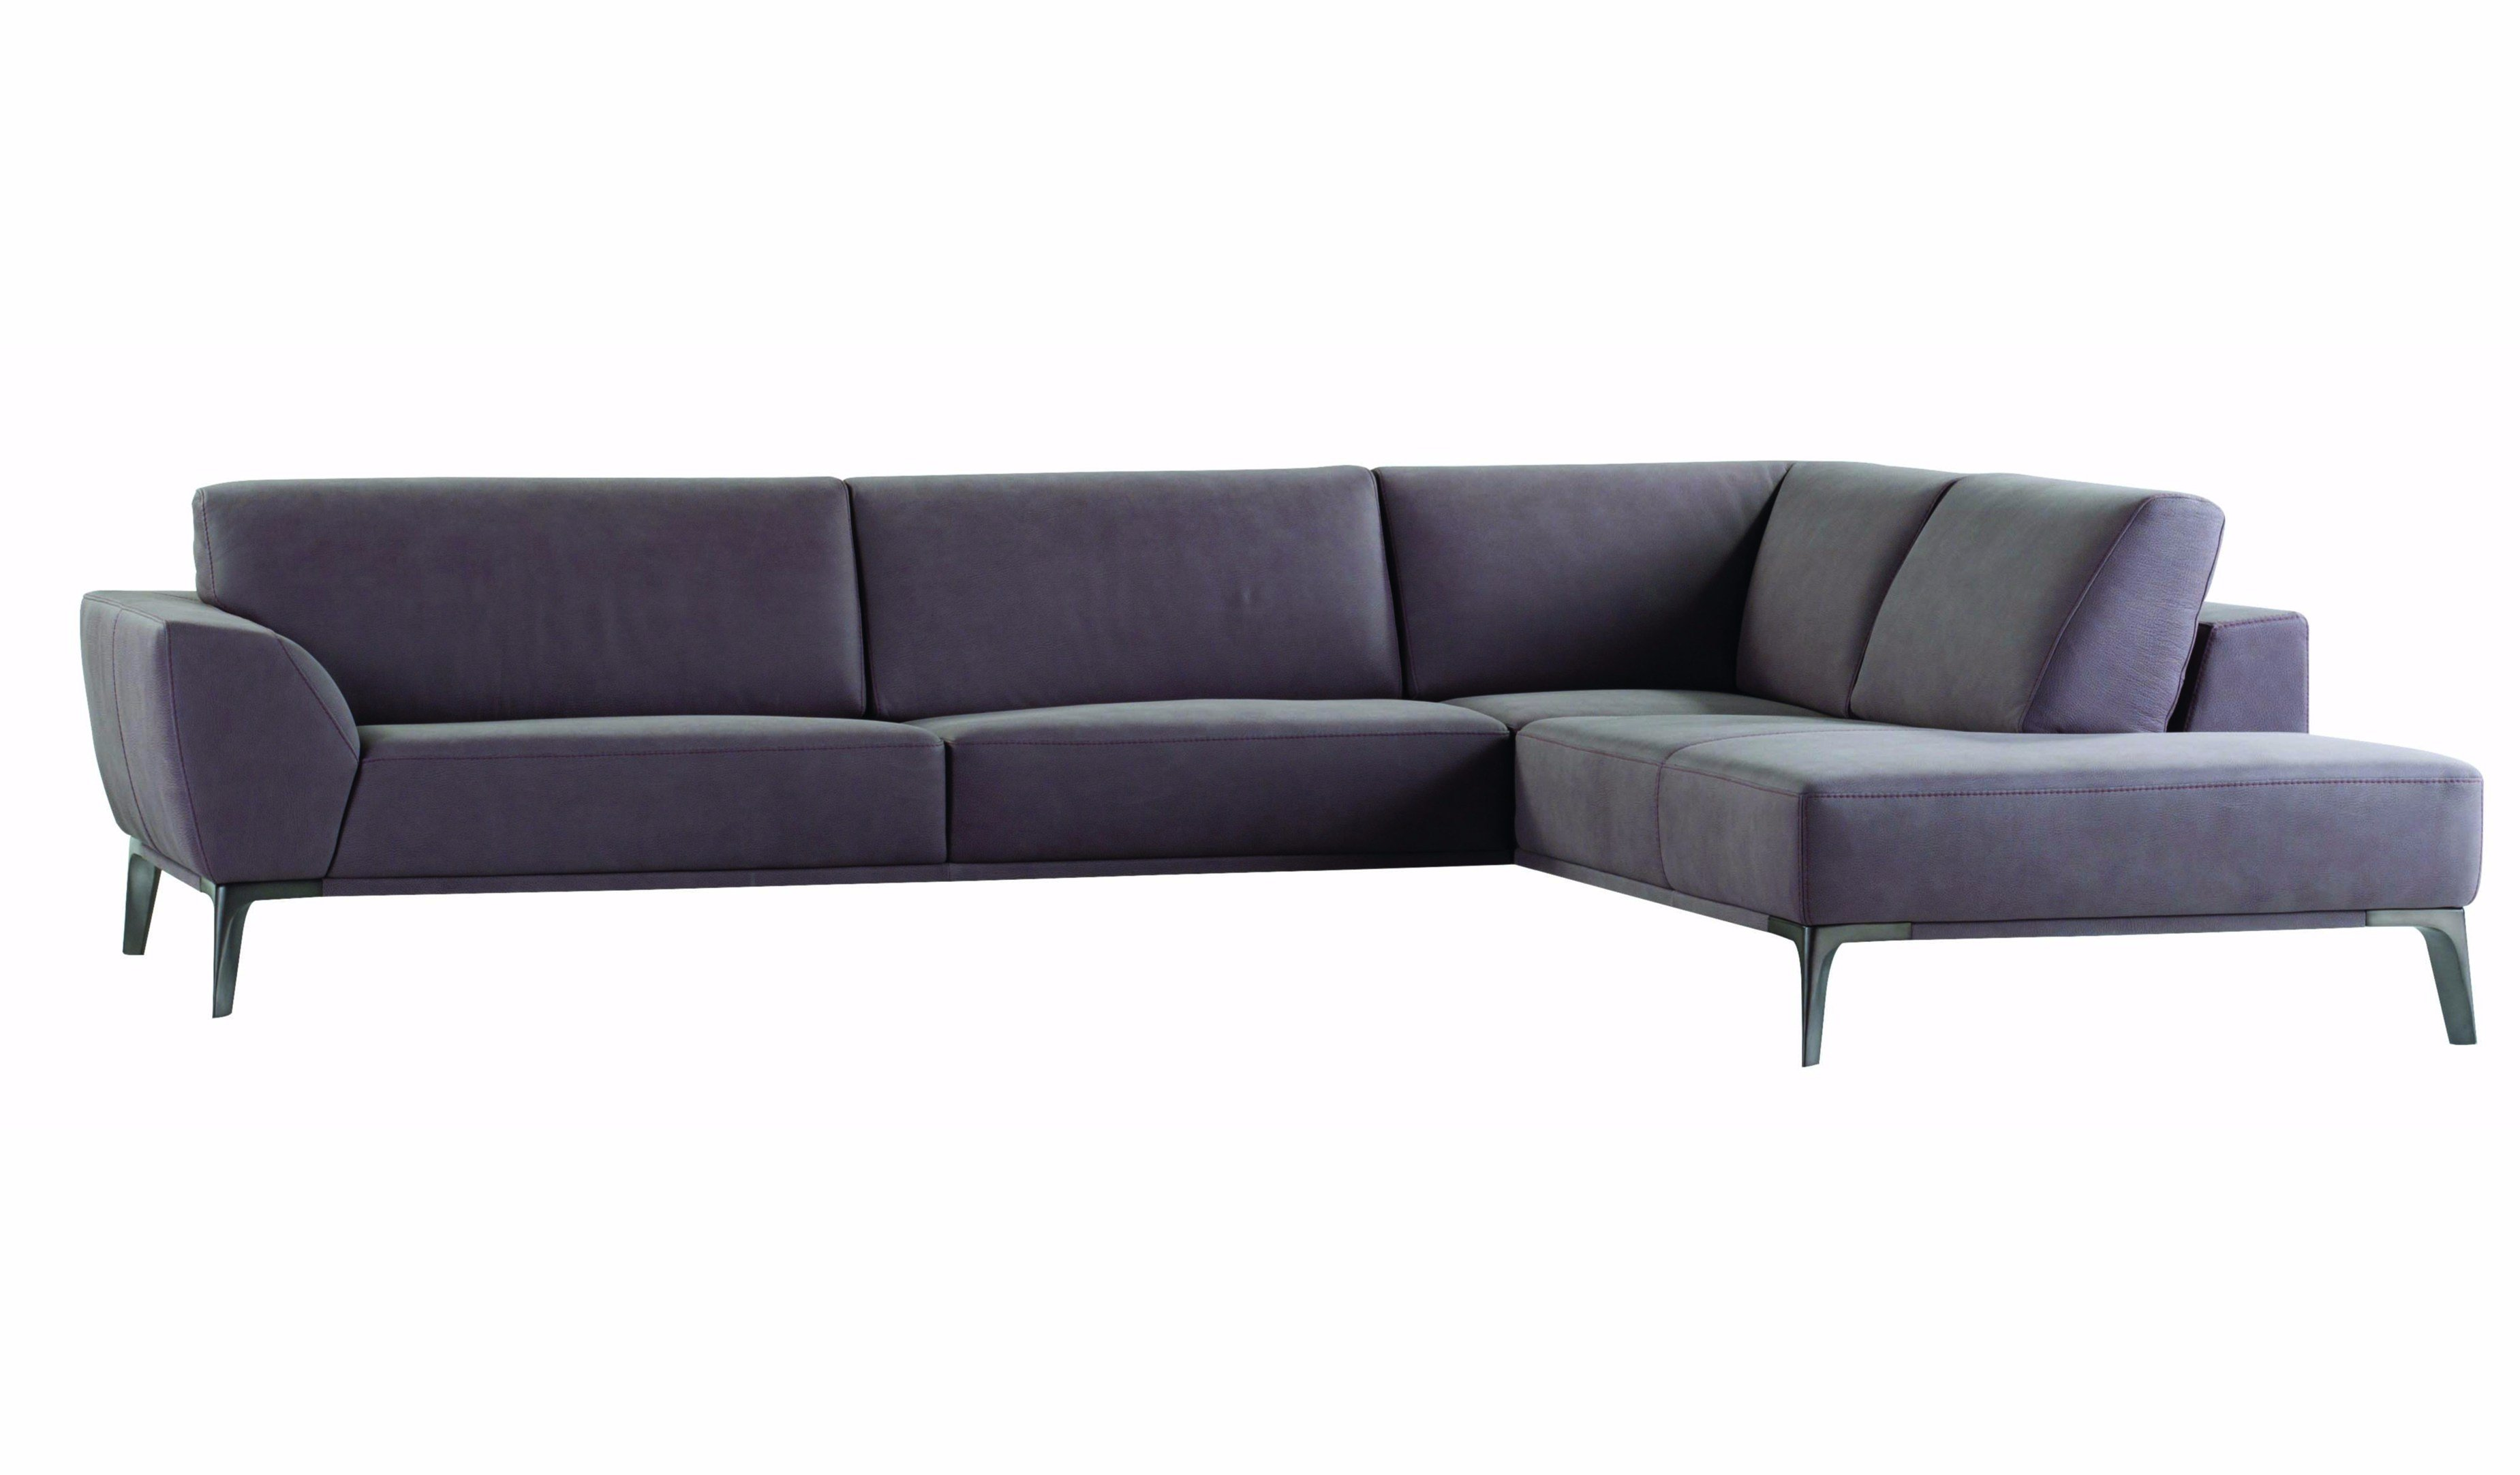 corner leather sofa meteore by roche bobois design sacha lakic